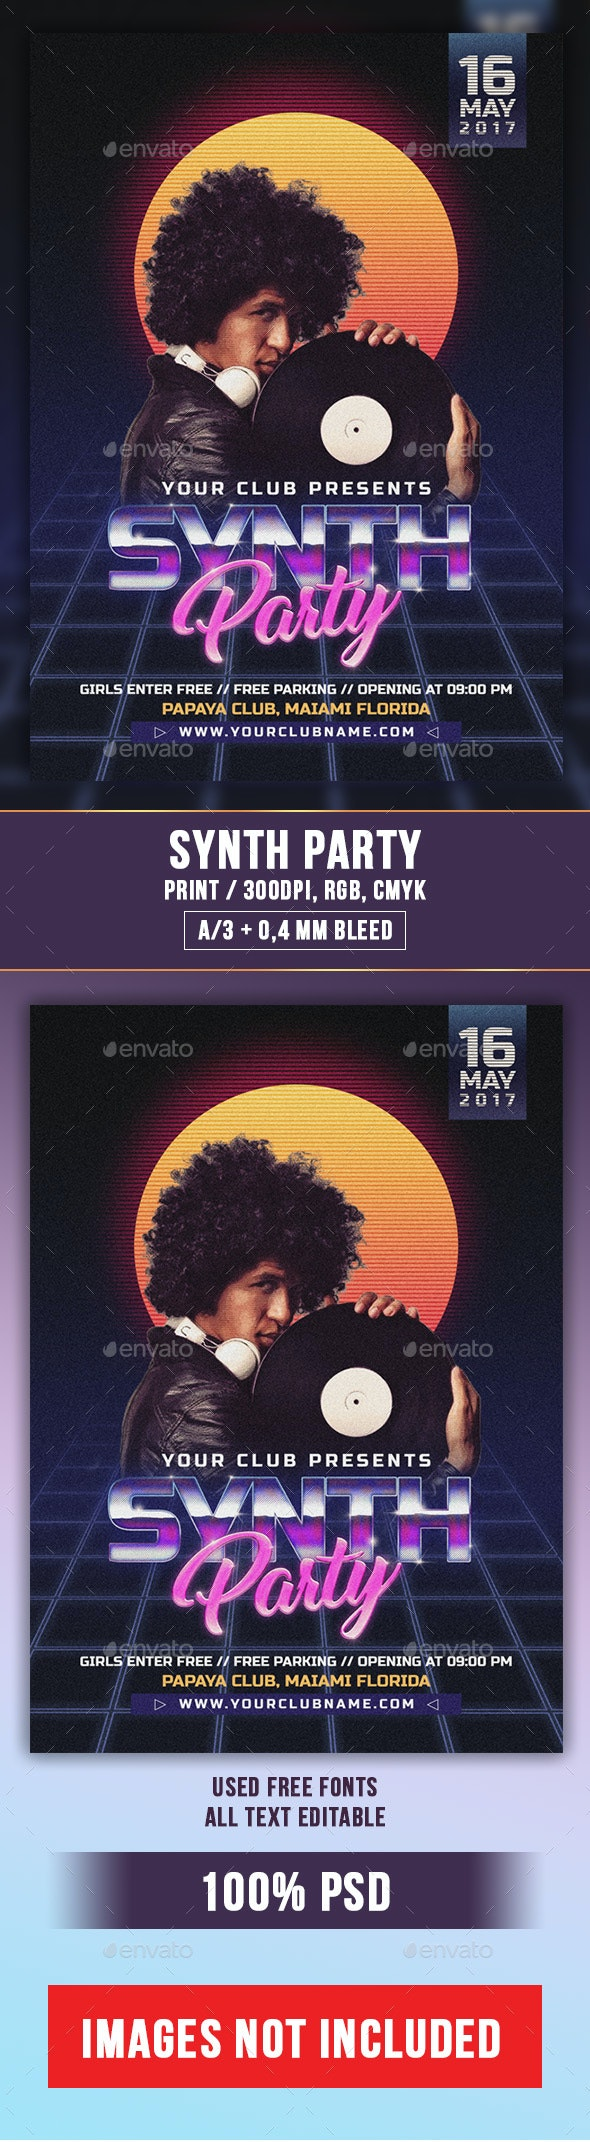 Synth Party Flyer PSD Template - Clubs & Parties Events